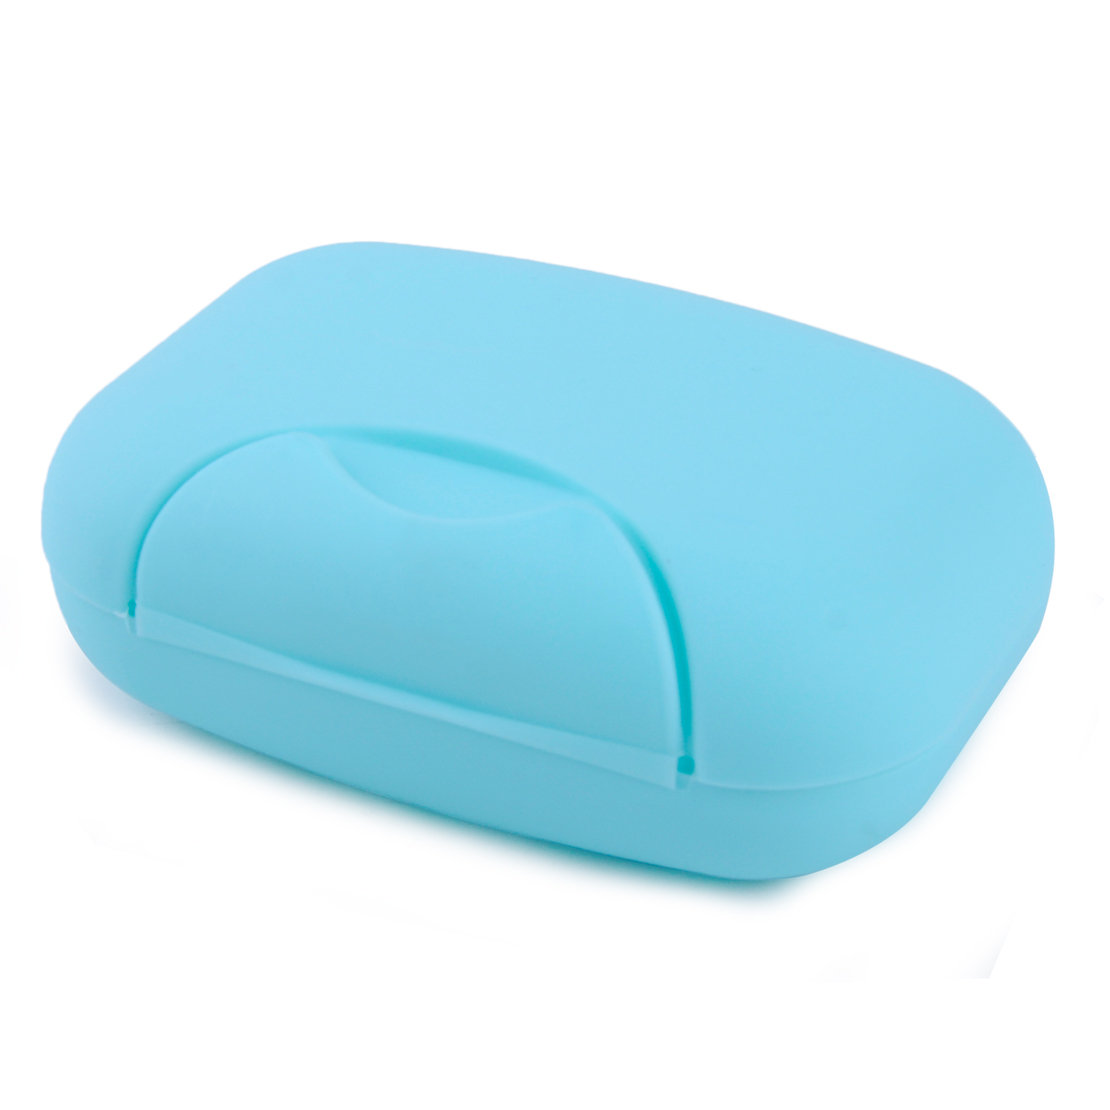 Portable Soap Dish Box Case Container Holder Travel Bathroom Home ...